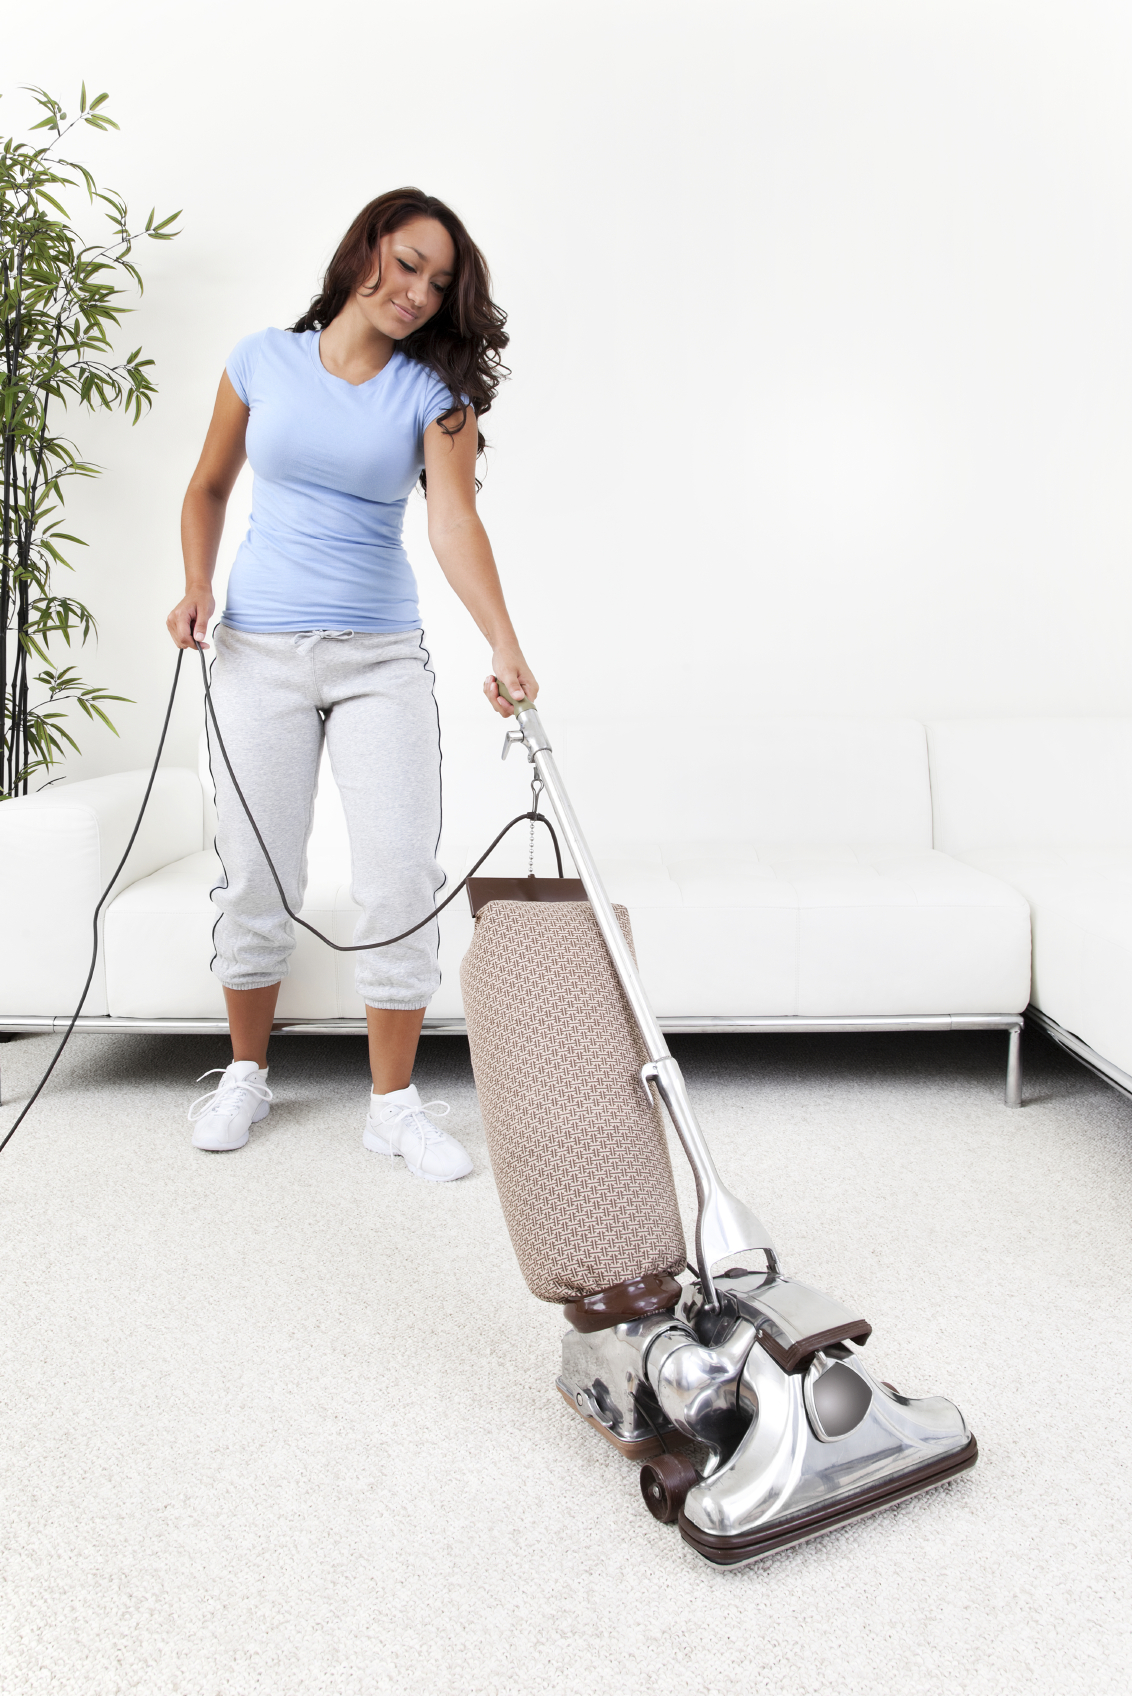 Is Your New Carpet Shedding